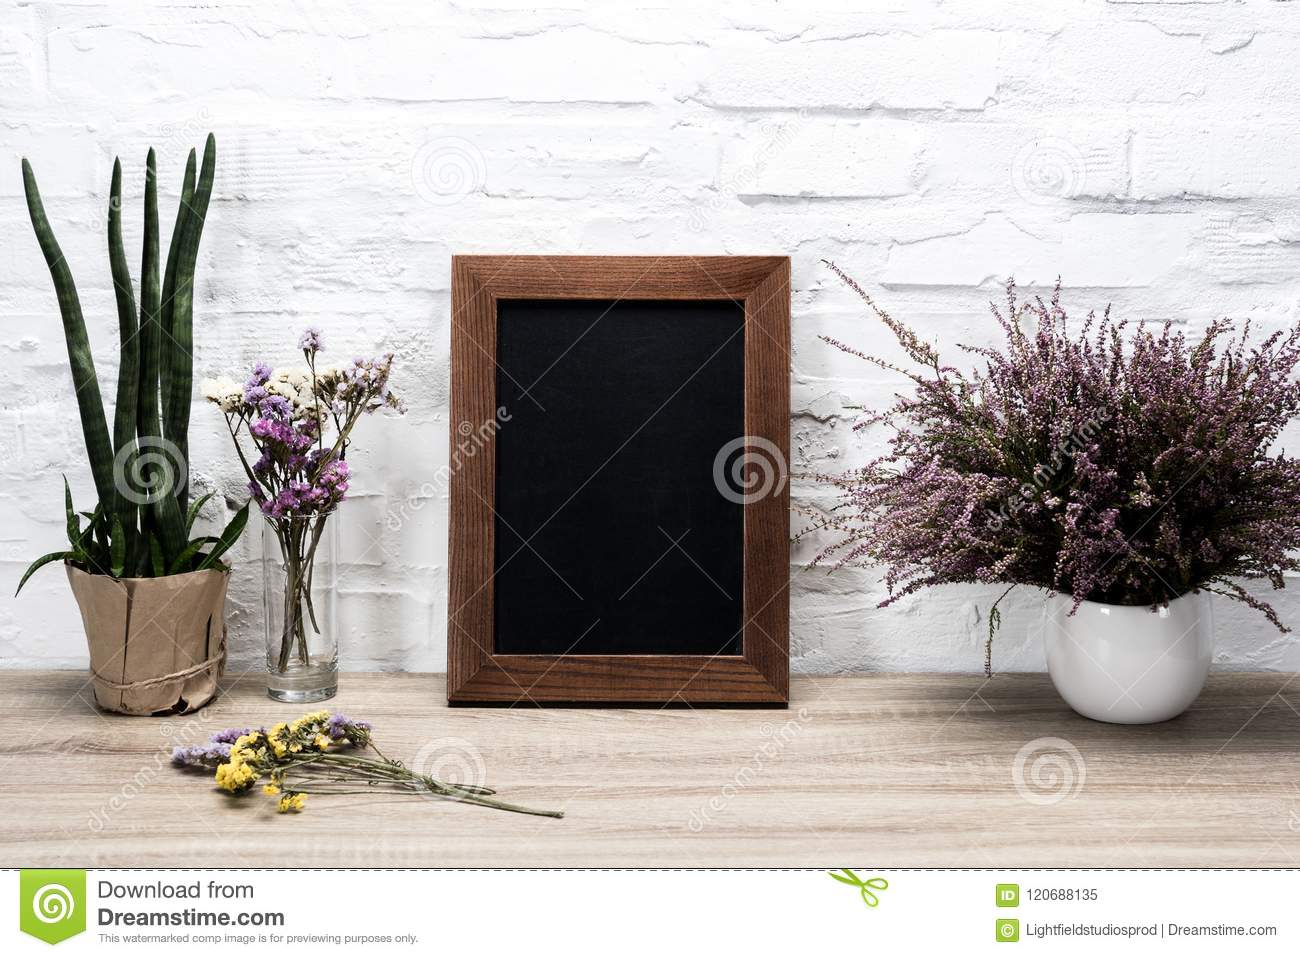 close up view of empty photo frame and lavender flowers in vase